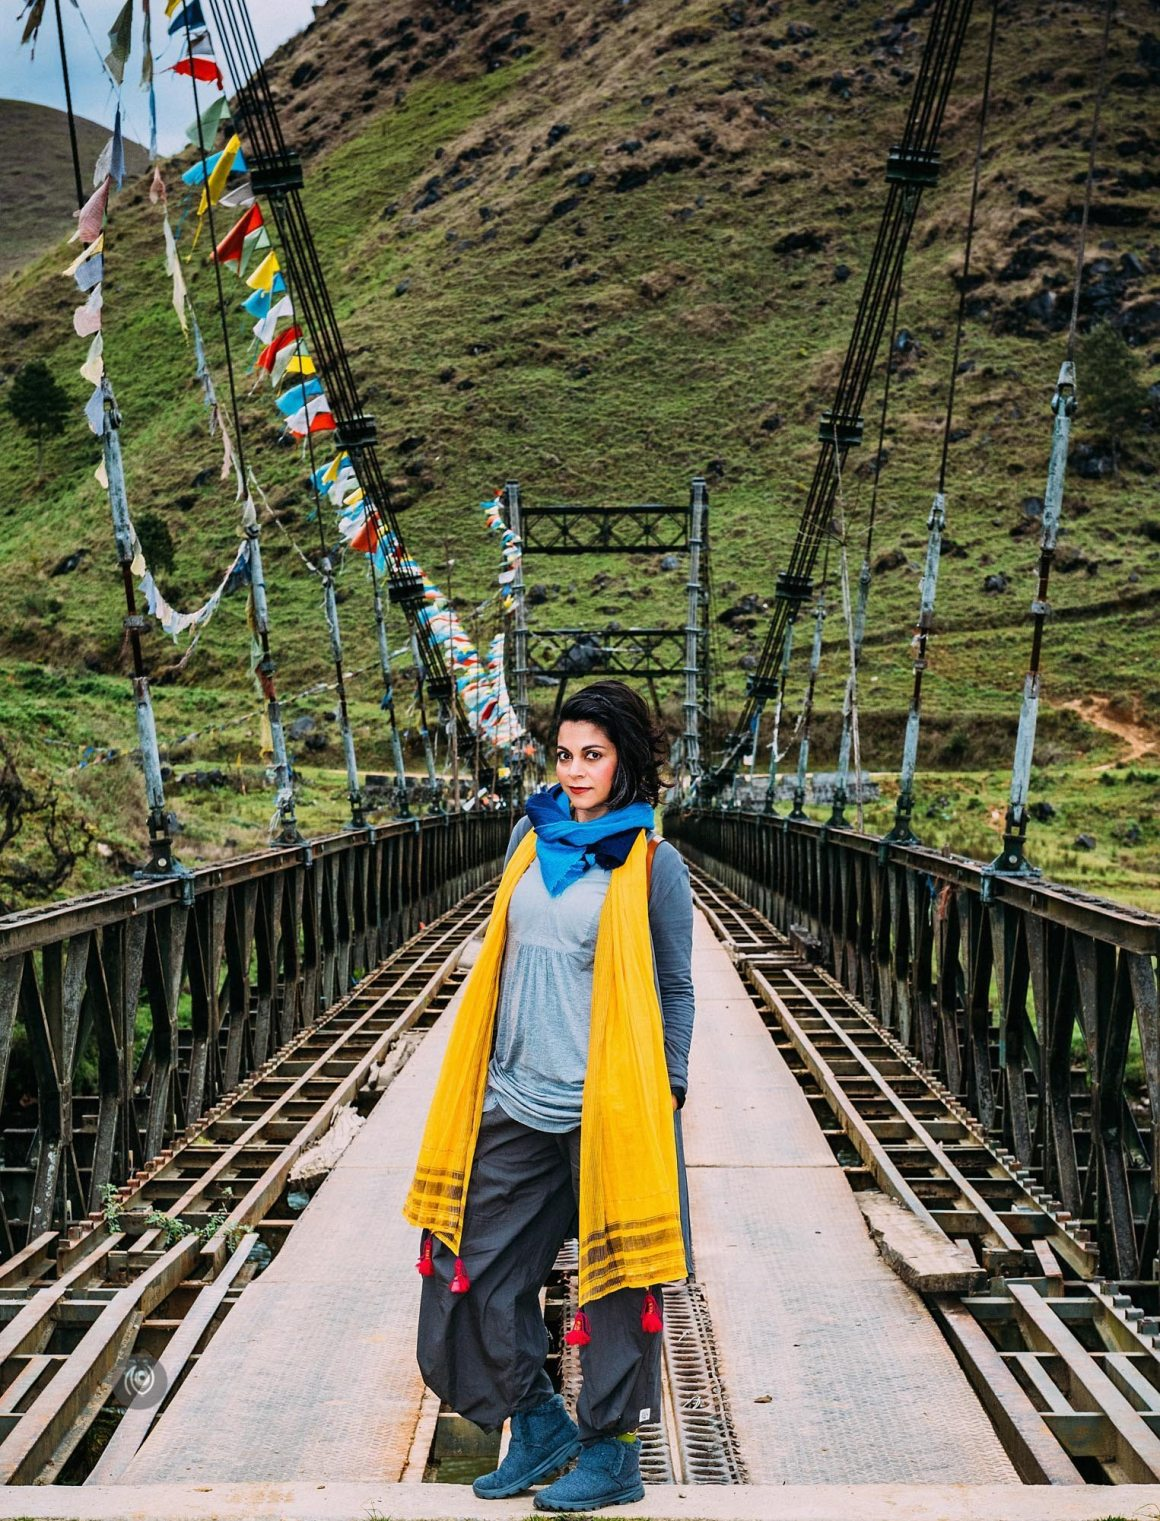 #CoverUp 72, #EyesForArunachal, Naina.co, Luxury Photographer, Lifestyle Photographer, Travel Photographer, Fashion Photographer, Naina Redhu, Nicobar, GoodEarth, Travel Wear, #EyesForDestinations, #EyesForIndia, Destination Photographer, India, Arunachal Pradesh, Travel Gear, Dorjeeling Bridge, Menchukha, Experience Collector, Photo Story, Visual Experience Collector, #CoverUp